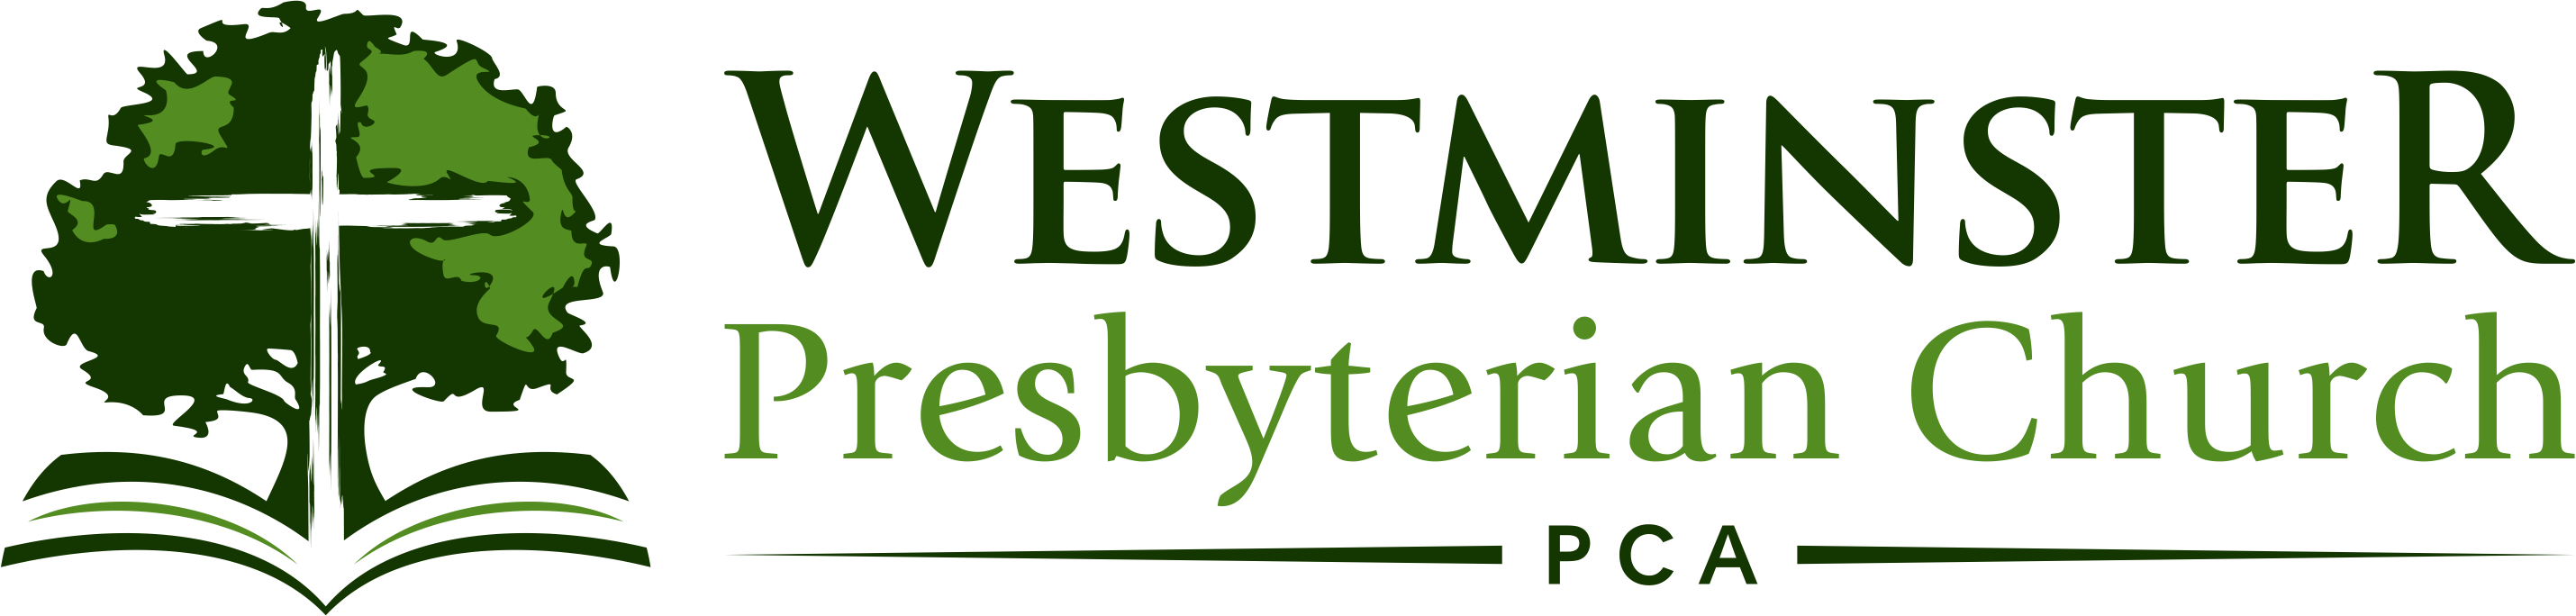 Westminster Presbyterian Church Logo